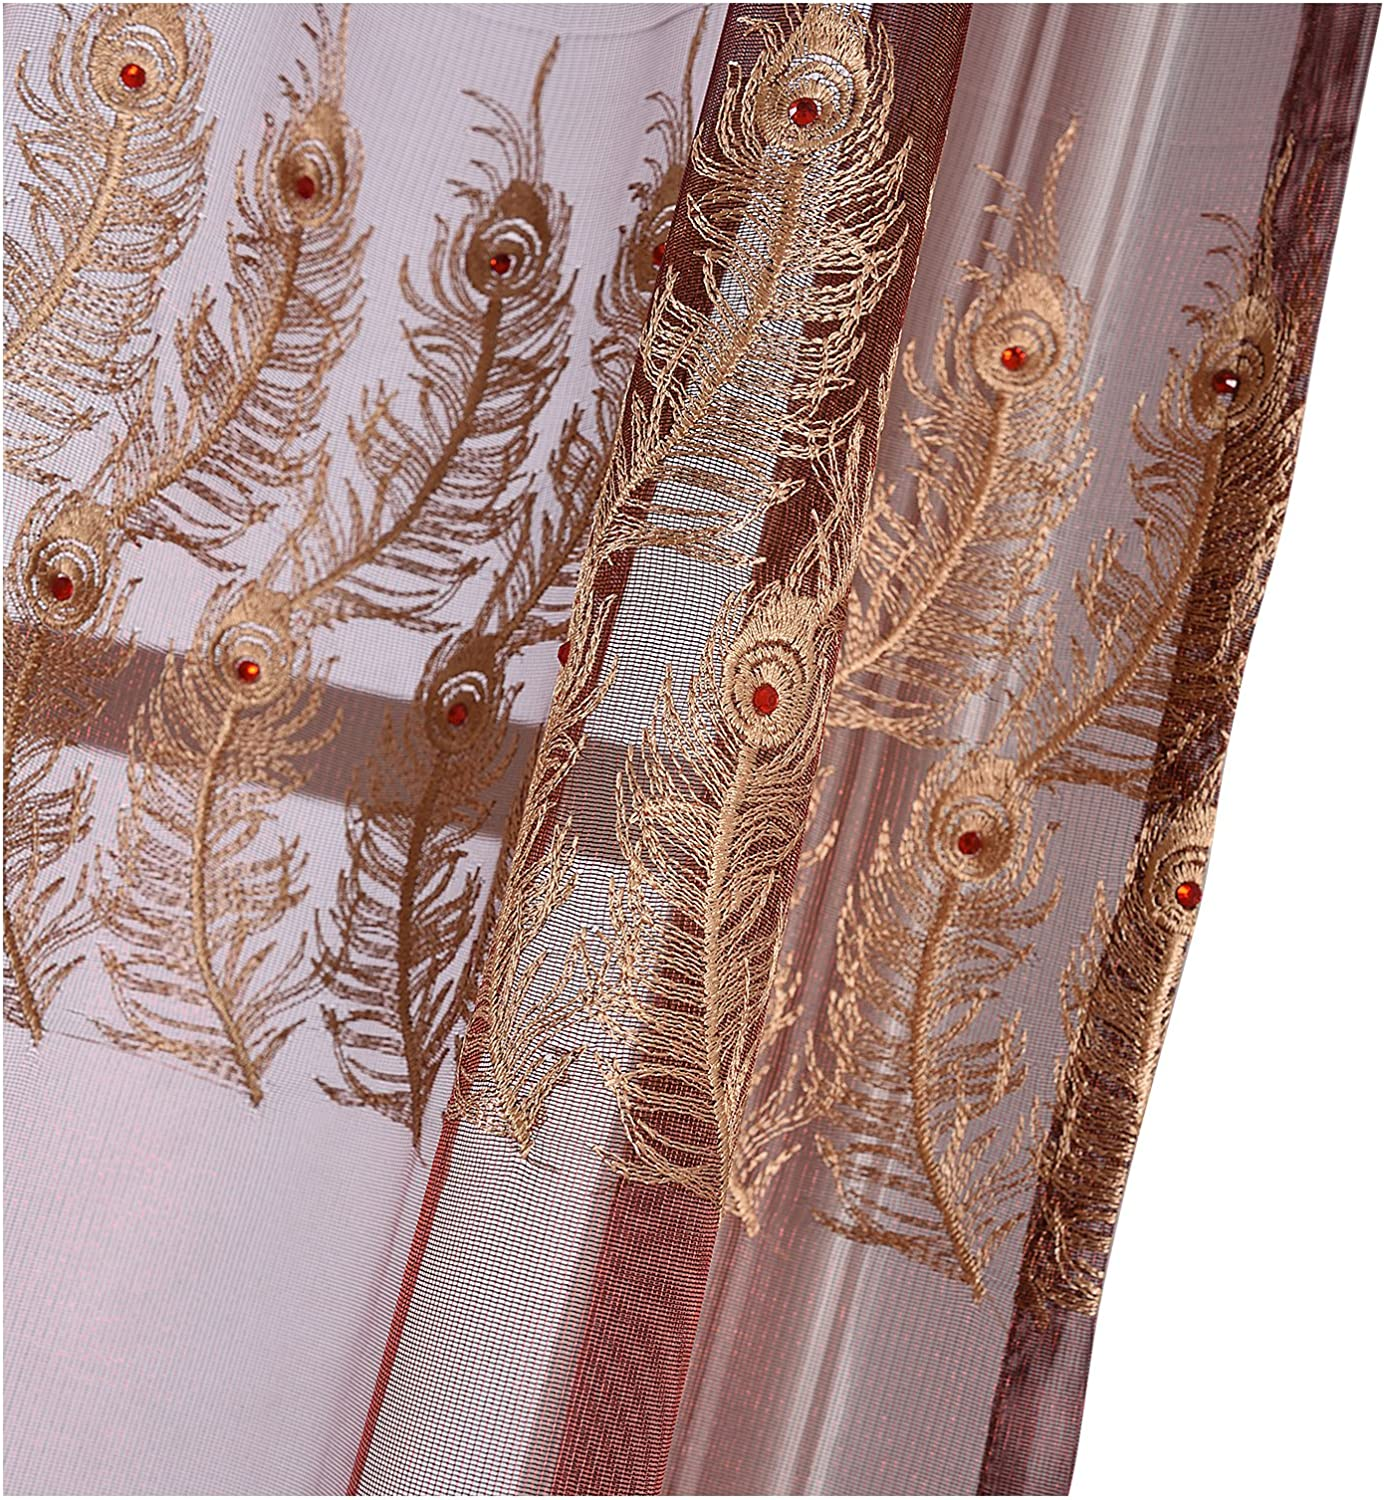 Sheer Window Curtains Regular store Feather Print Pocket Panels Top Las Vegas Mall Voile Rod